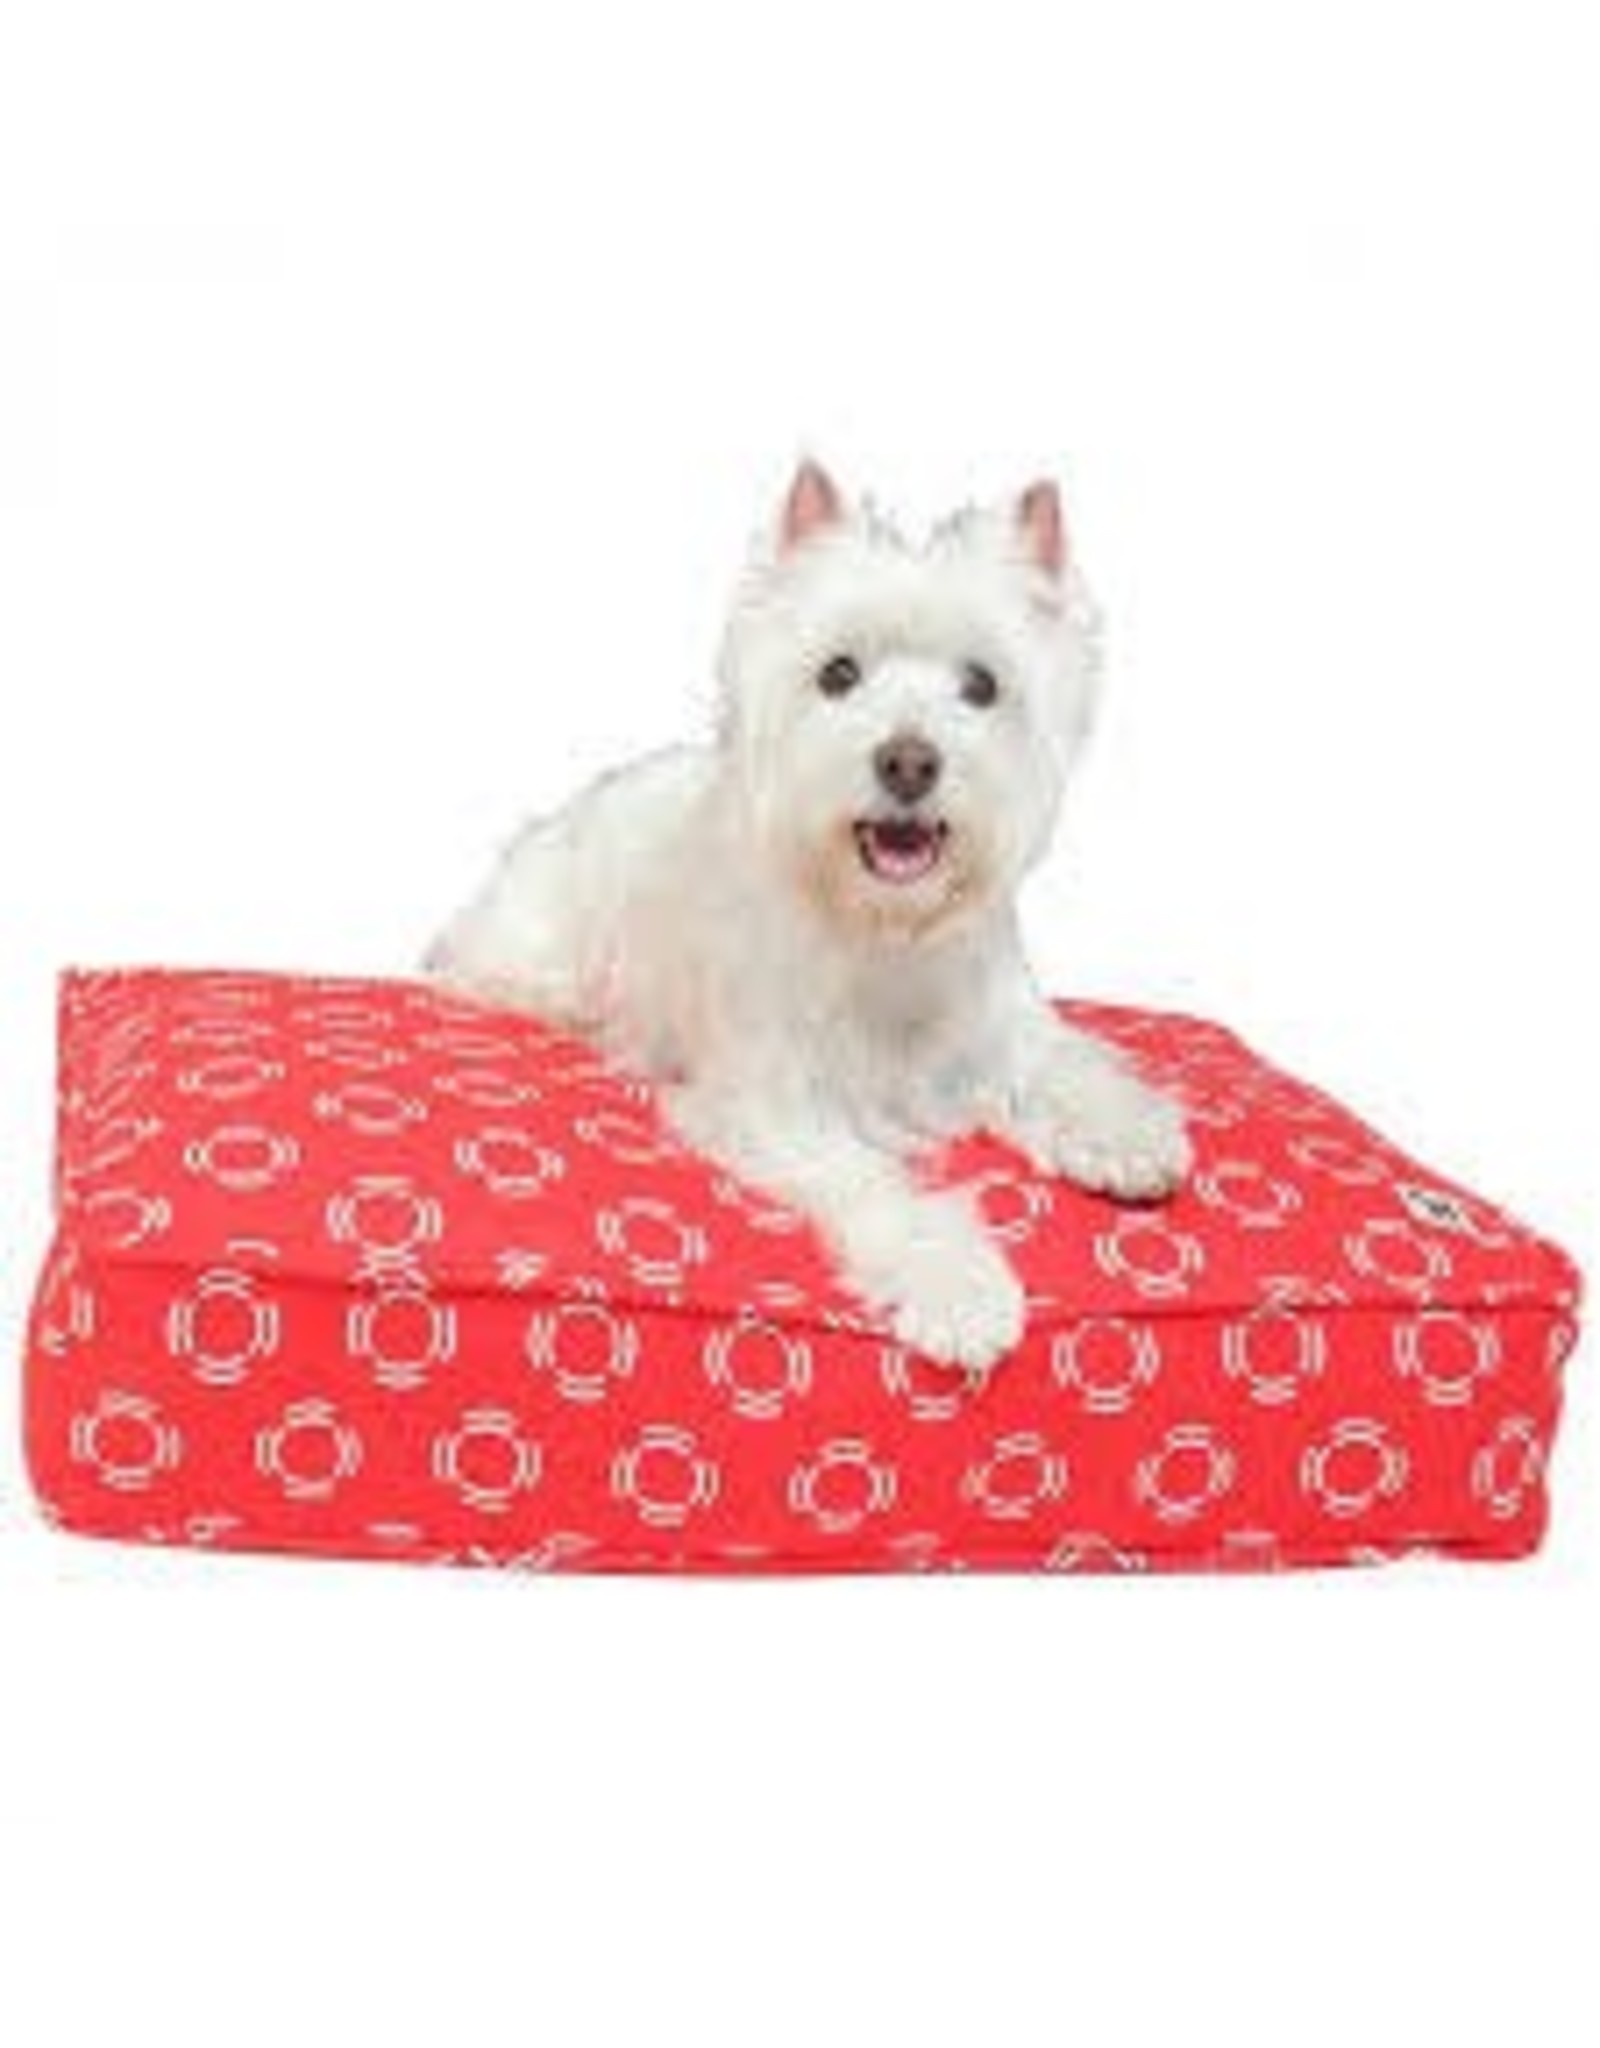 MOLLYMUTT MOLLY MUTT LADY IN RED DUVET-S